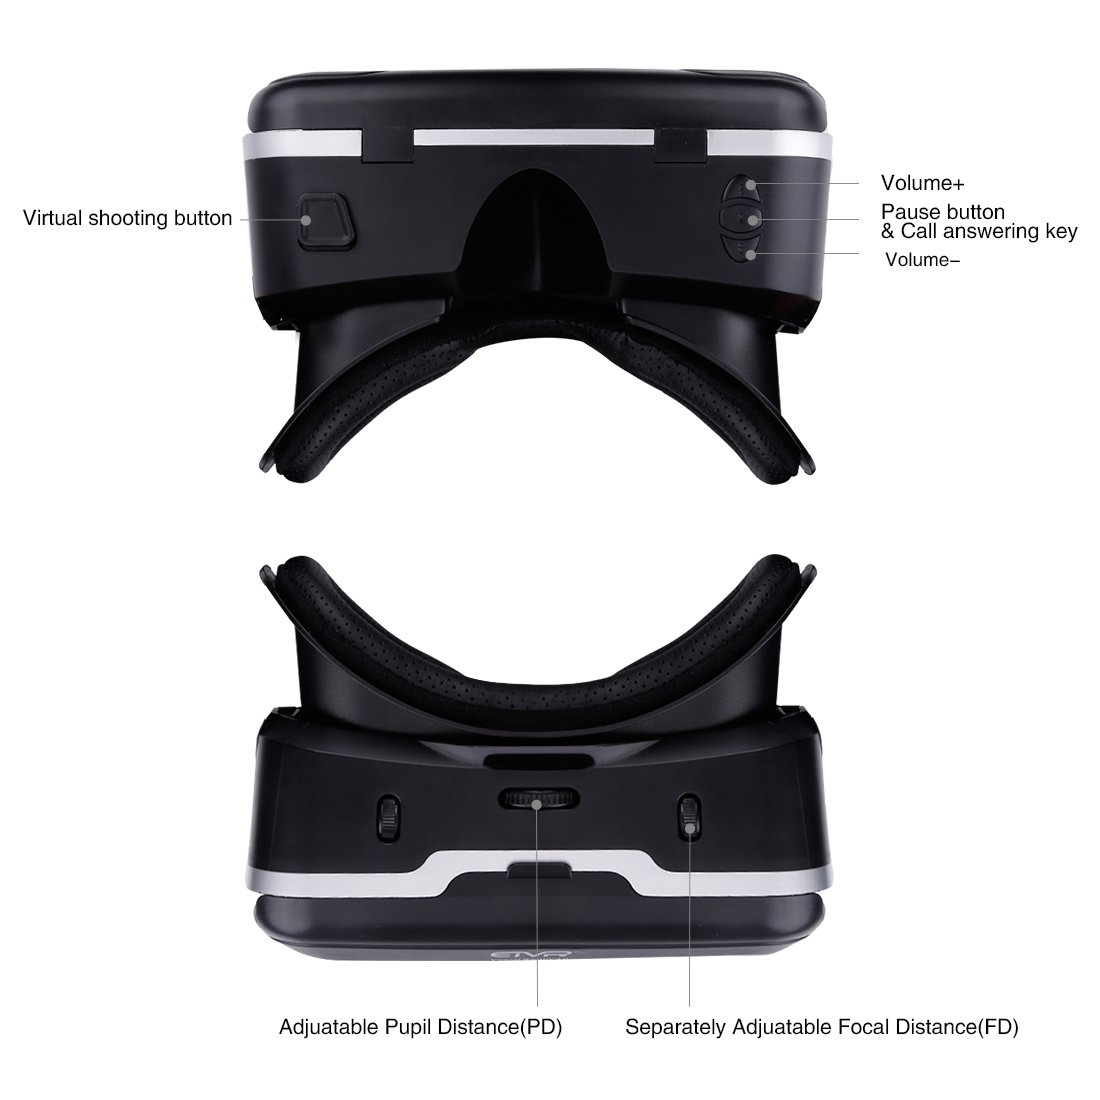 VR Headset with Remote Controller Immersive 3D VR Glasses Virtual Reality Headsetwith Stereo Headphone and Adjustable Headstrap for 3D Movies & VR Games, Fit for 4.7-6.0 inch IOS/Android Smartphone by EXCLEAD (Image #6)